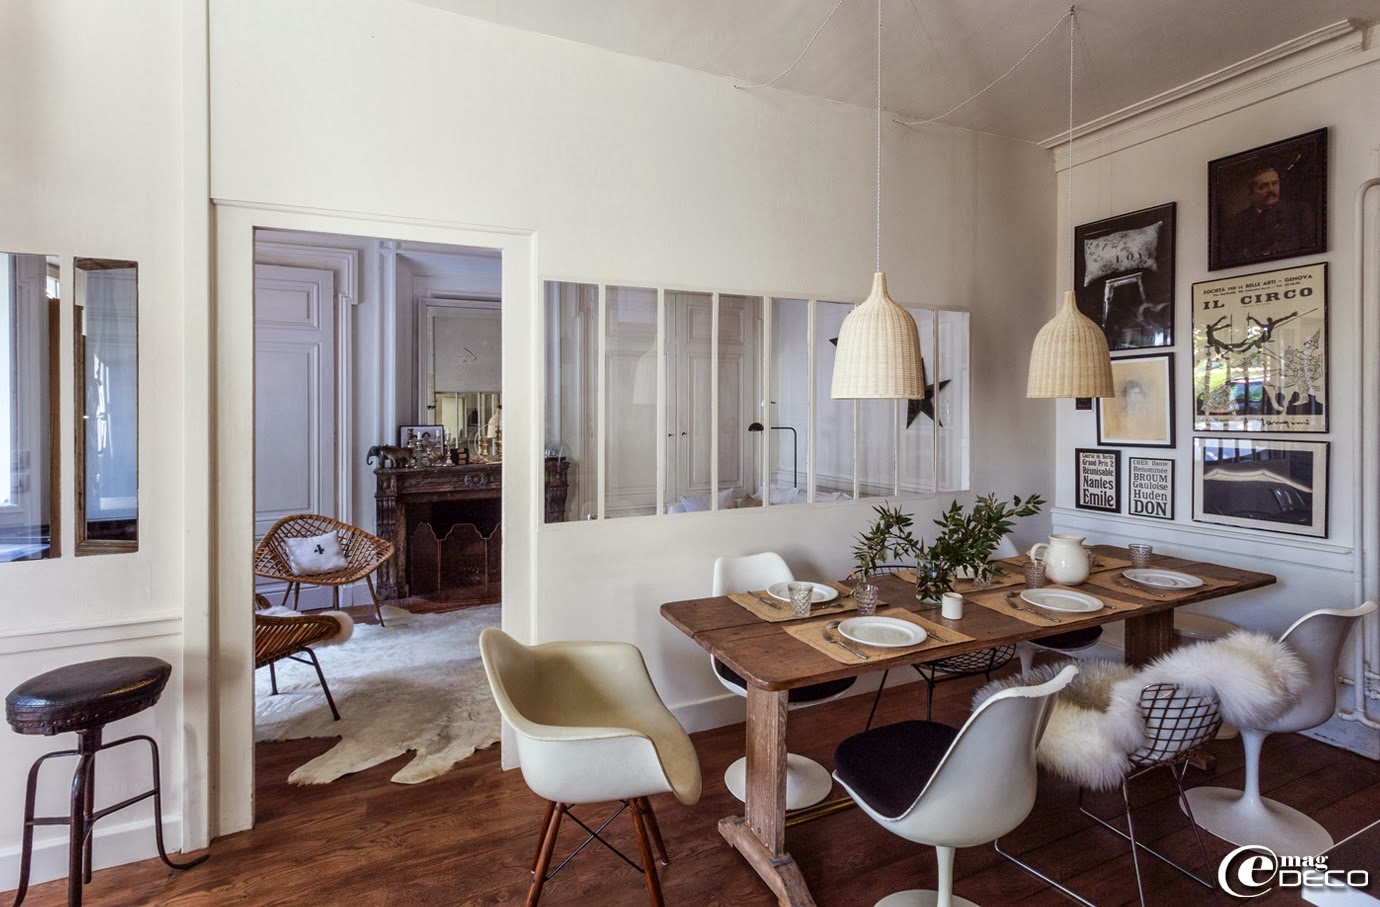 Interior decorative florence bouvier 39 s house in lyon - Photo d interieur de maison design ...